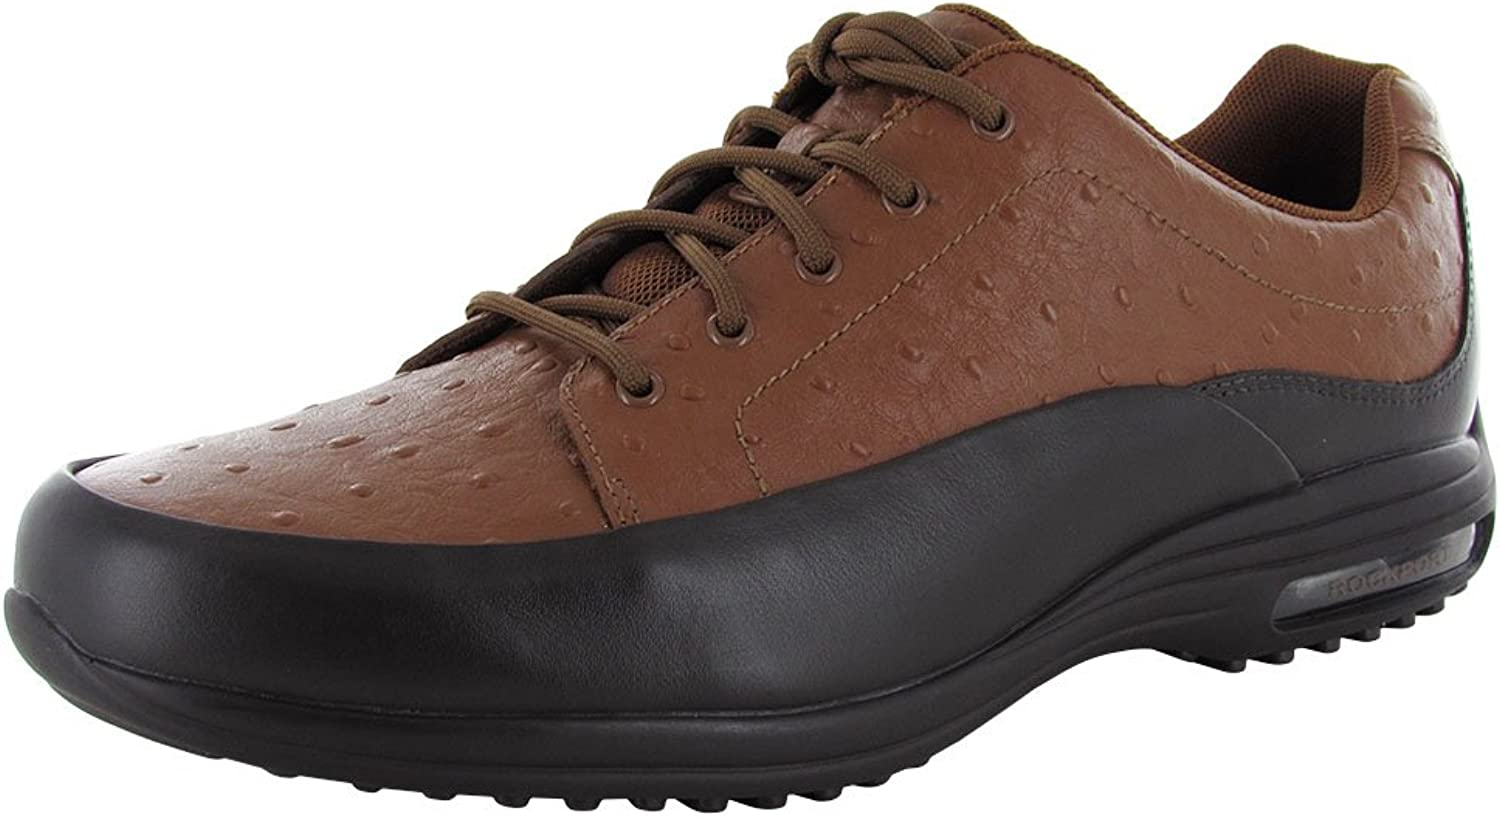 Rockport Mens City Routes bluecher Oxford shoes